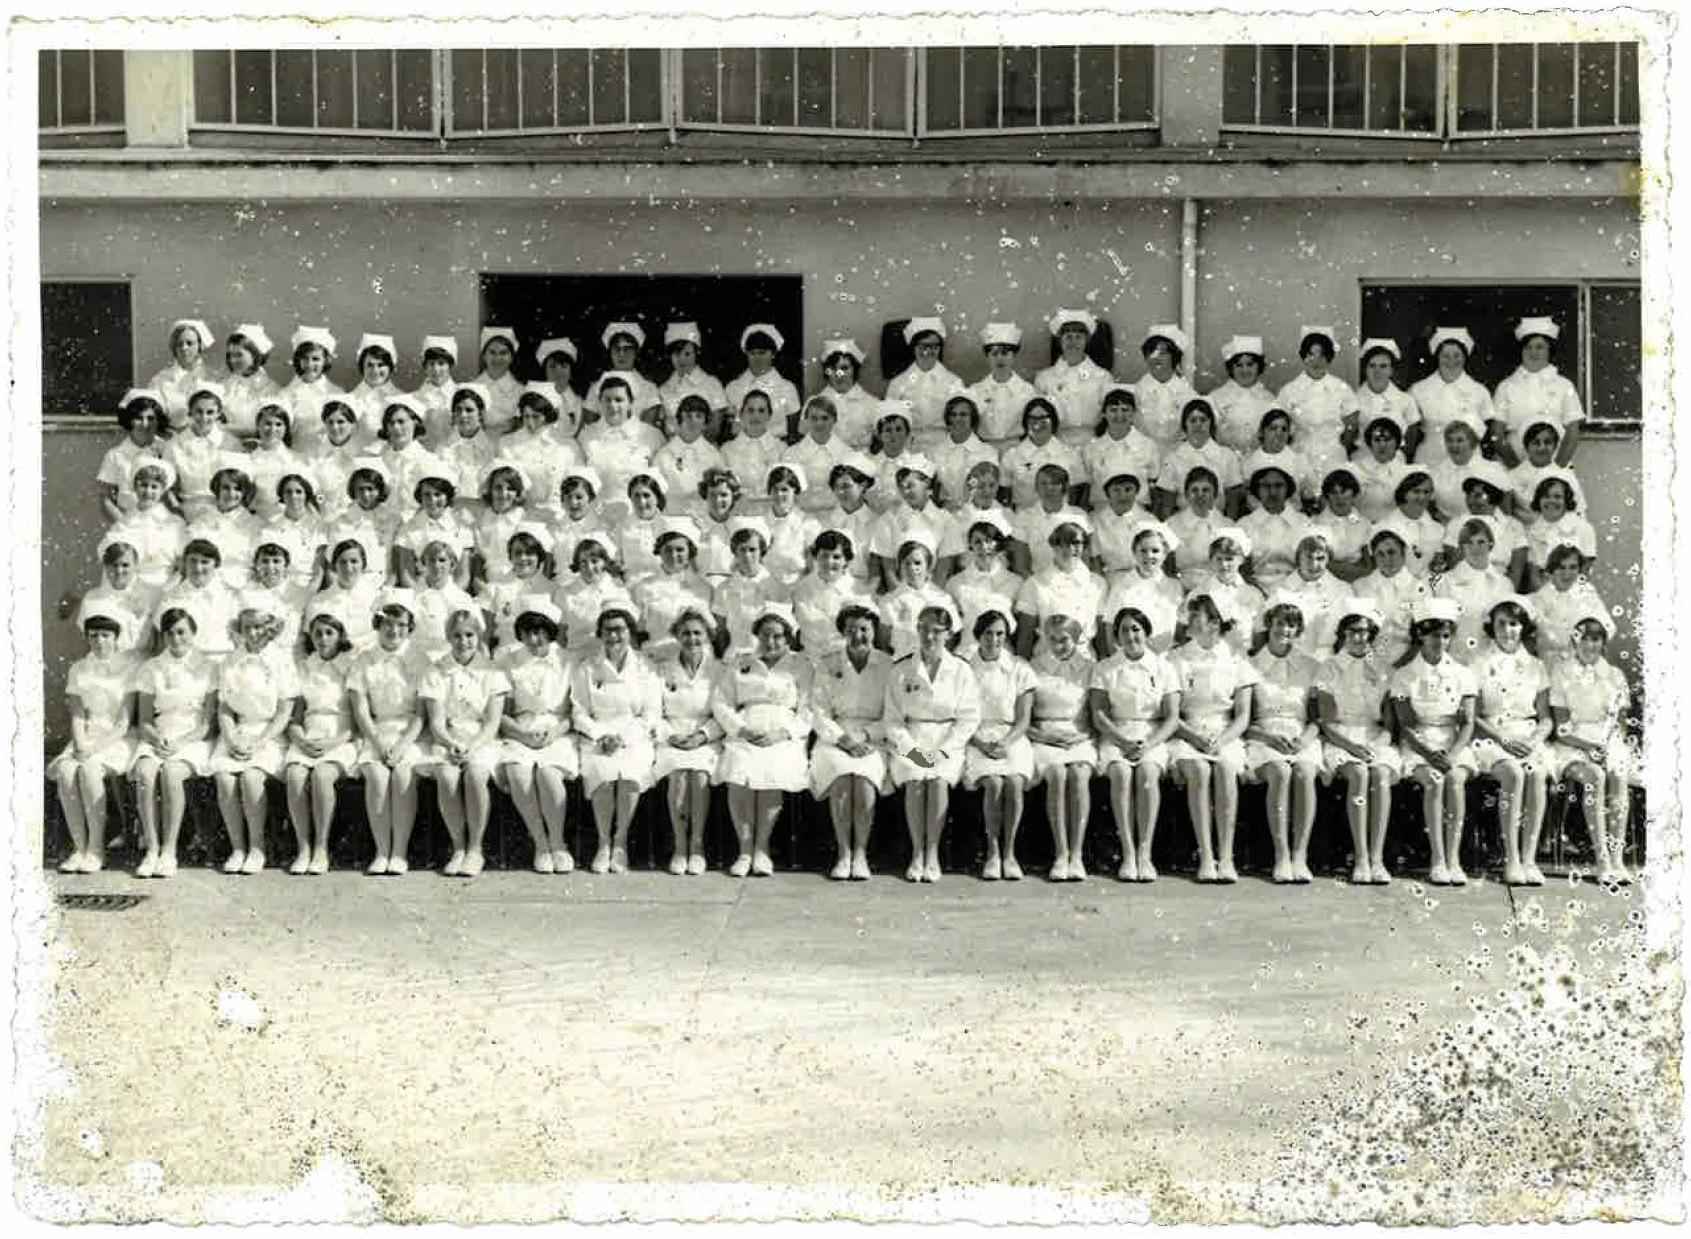 The mysterious nurses photo that was found in a gutter a couple of weeks ago. Doreen Voigt is in the front row, ninth from the left.